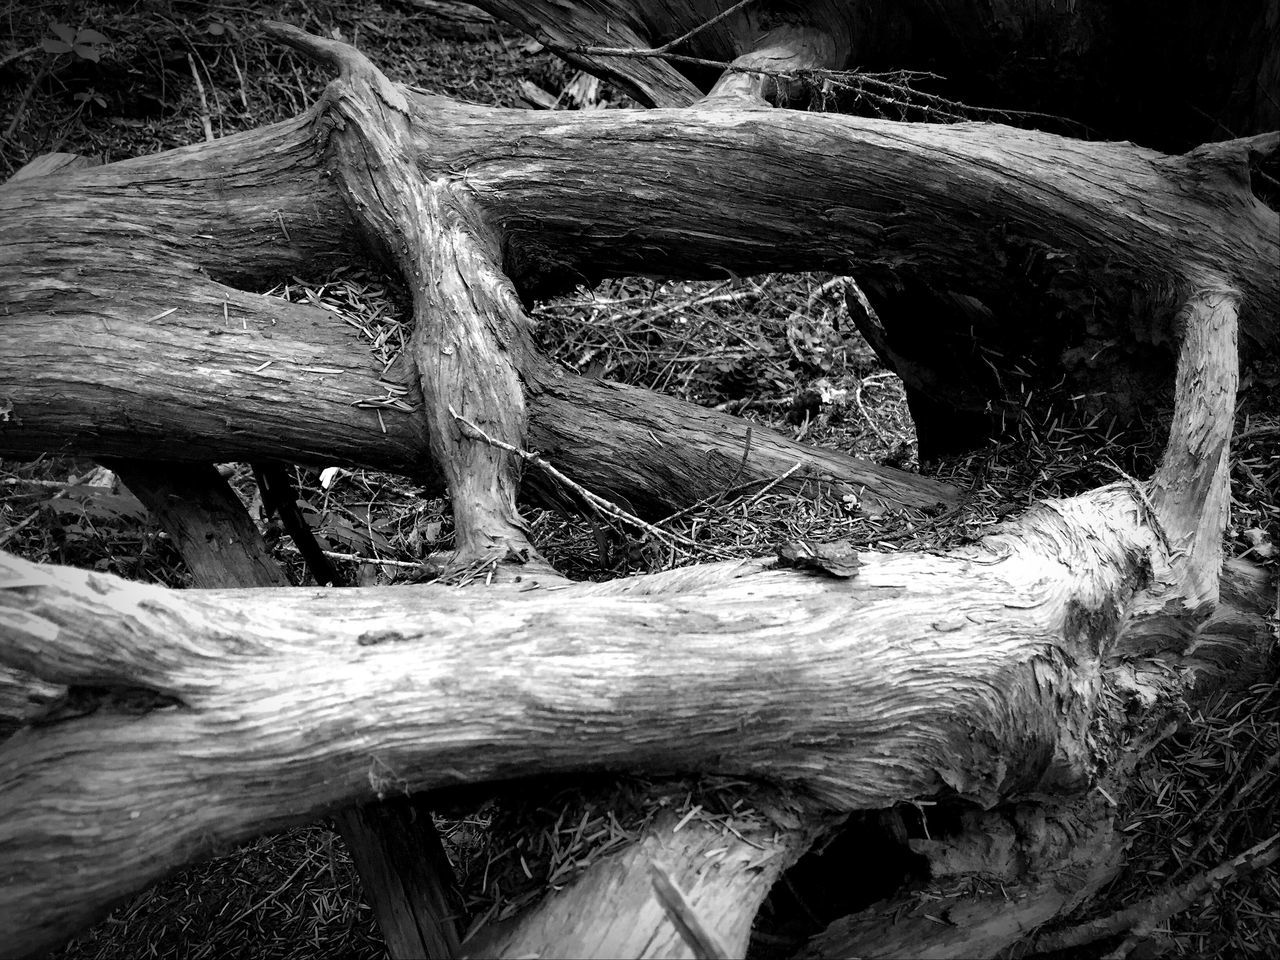 Black And White Still Life Tree Trunk Views Abstractions Old Tree Perspective Sculpture Shapes In Nature  Log Outdoors Textured  Fallen Tree Nature Beauty In Nature